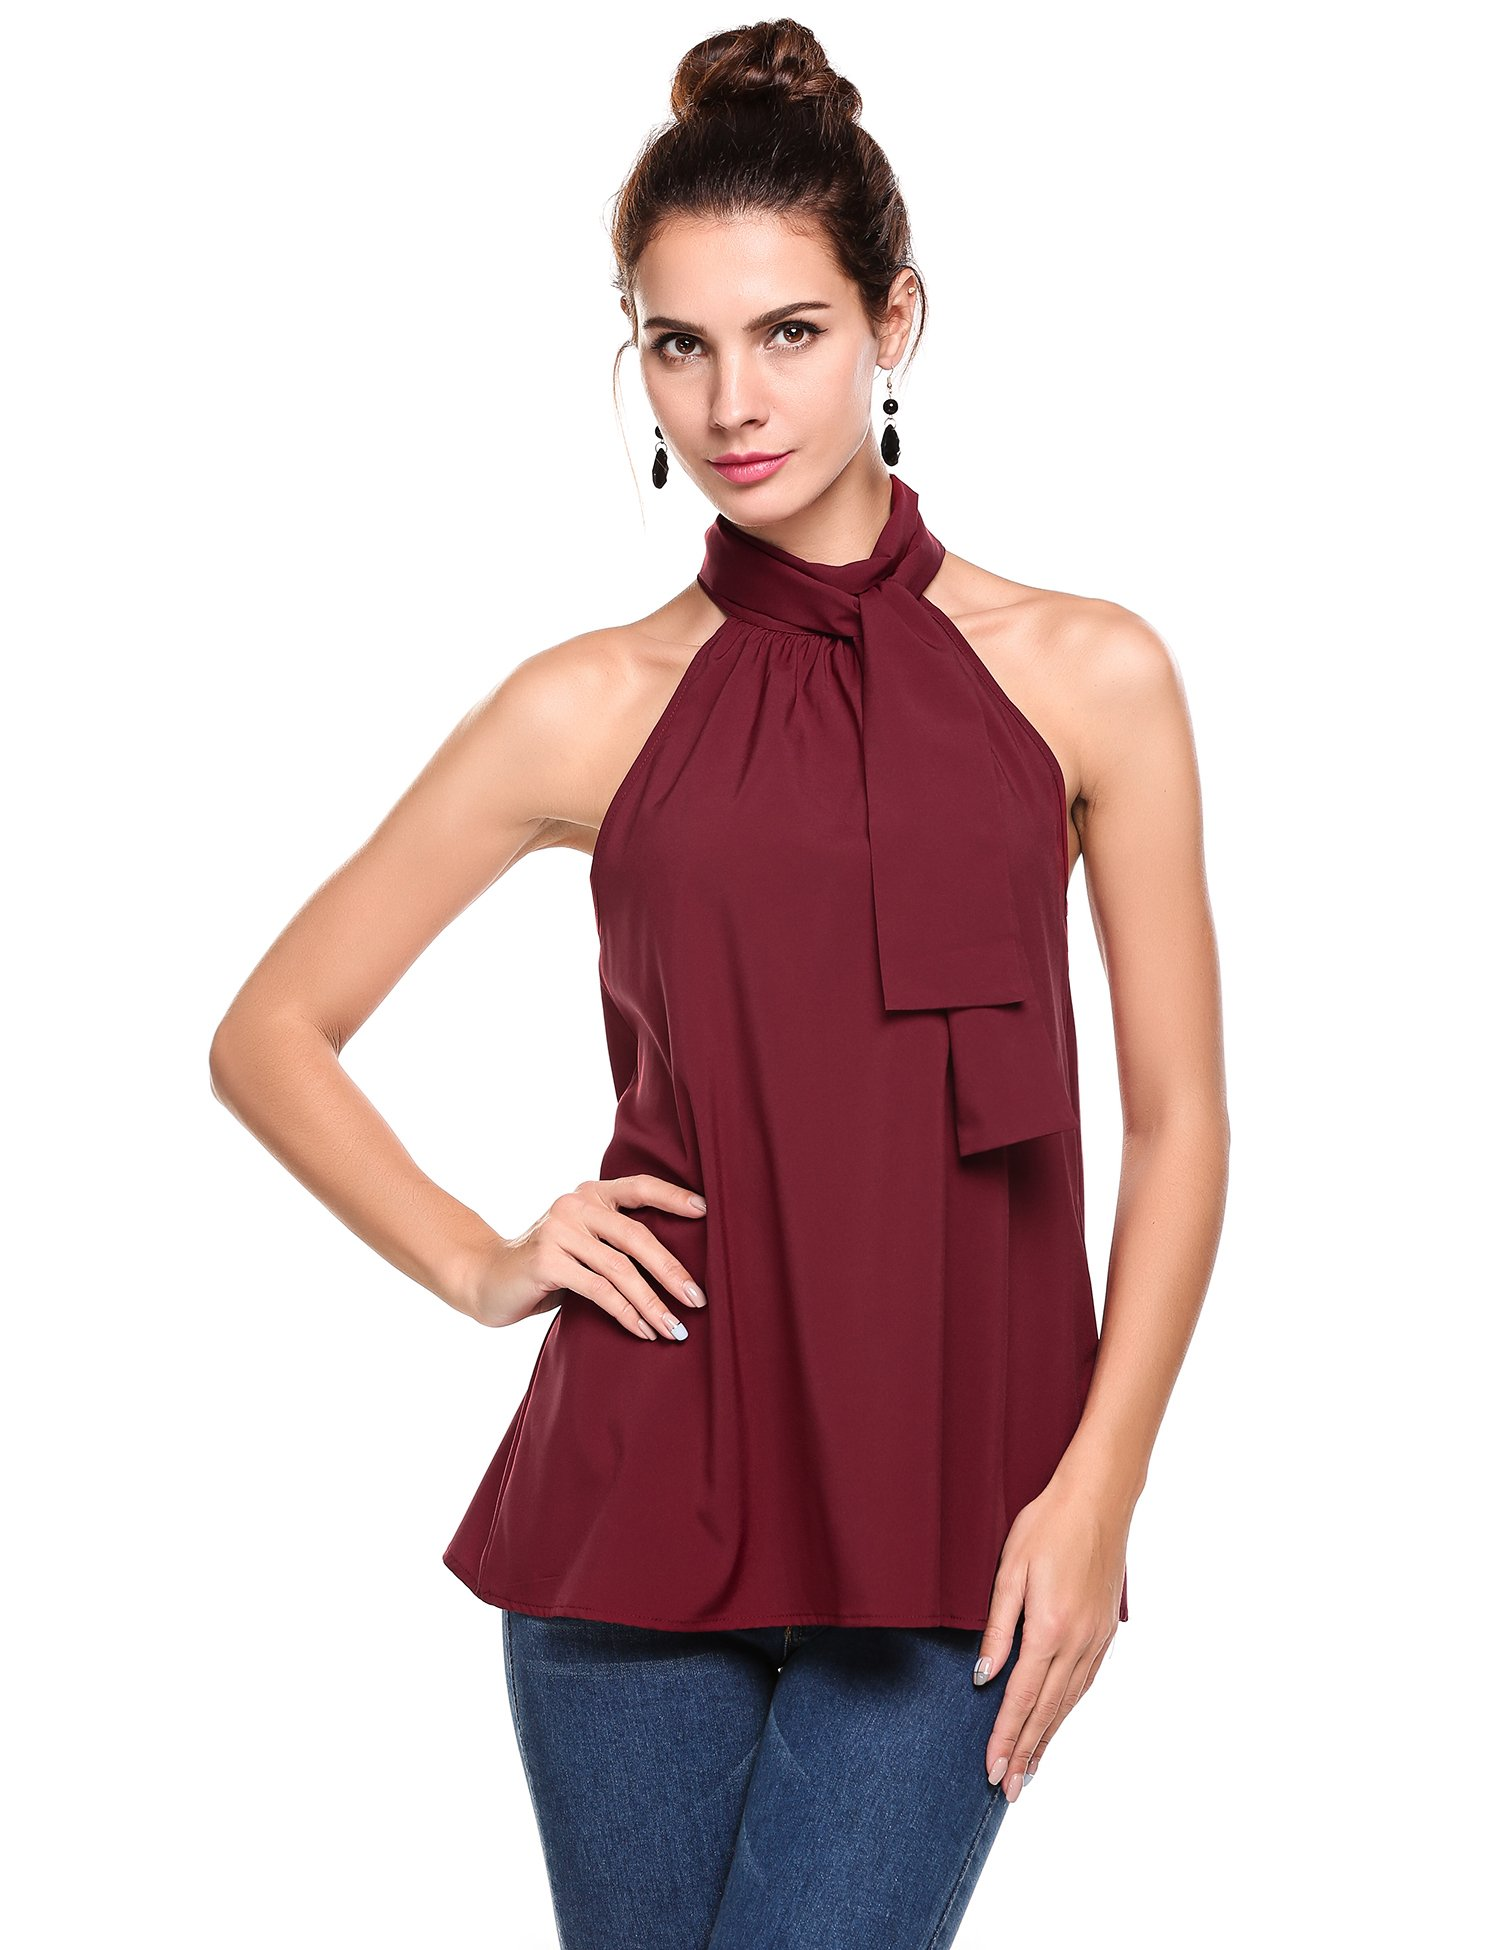 Meaneor Women's Summer Chiffon Sleeveless Office Blouse Tank Shirt Halter Neck Tie Back Solid Tops Wine Red